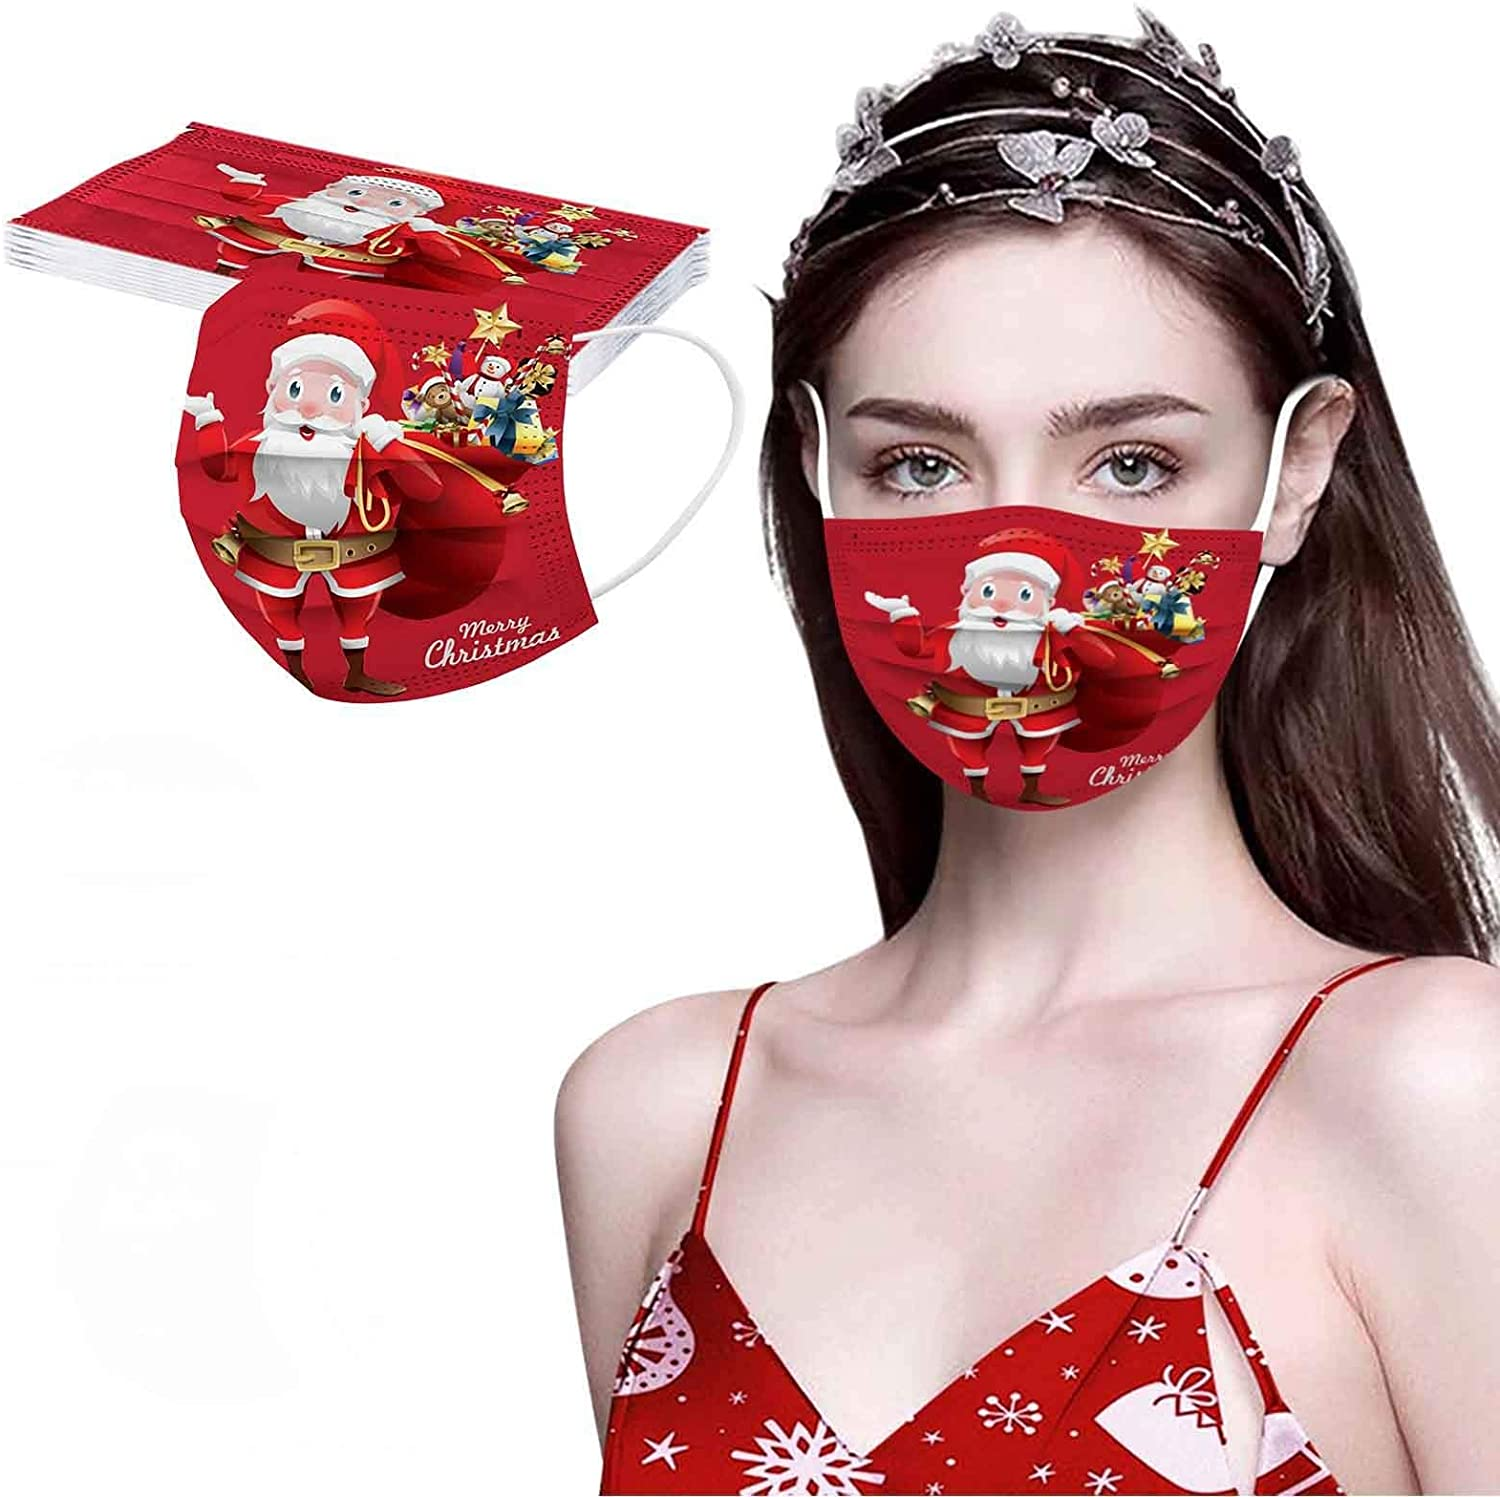 10/50Pcs Adult Christmas Disposable Face_mask, 3 Layer Christmas Face Macks for Men Women, Cute Christmas Themed Facial Covering Festival Party